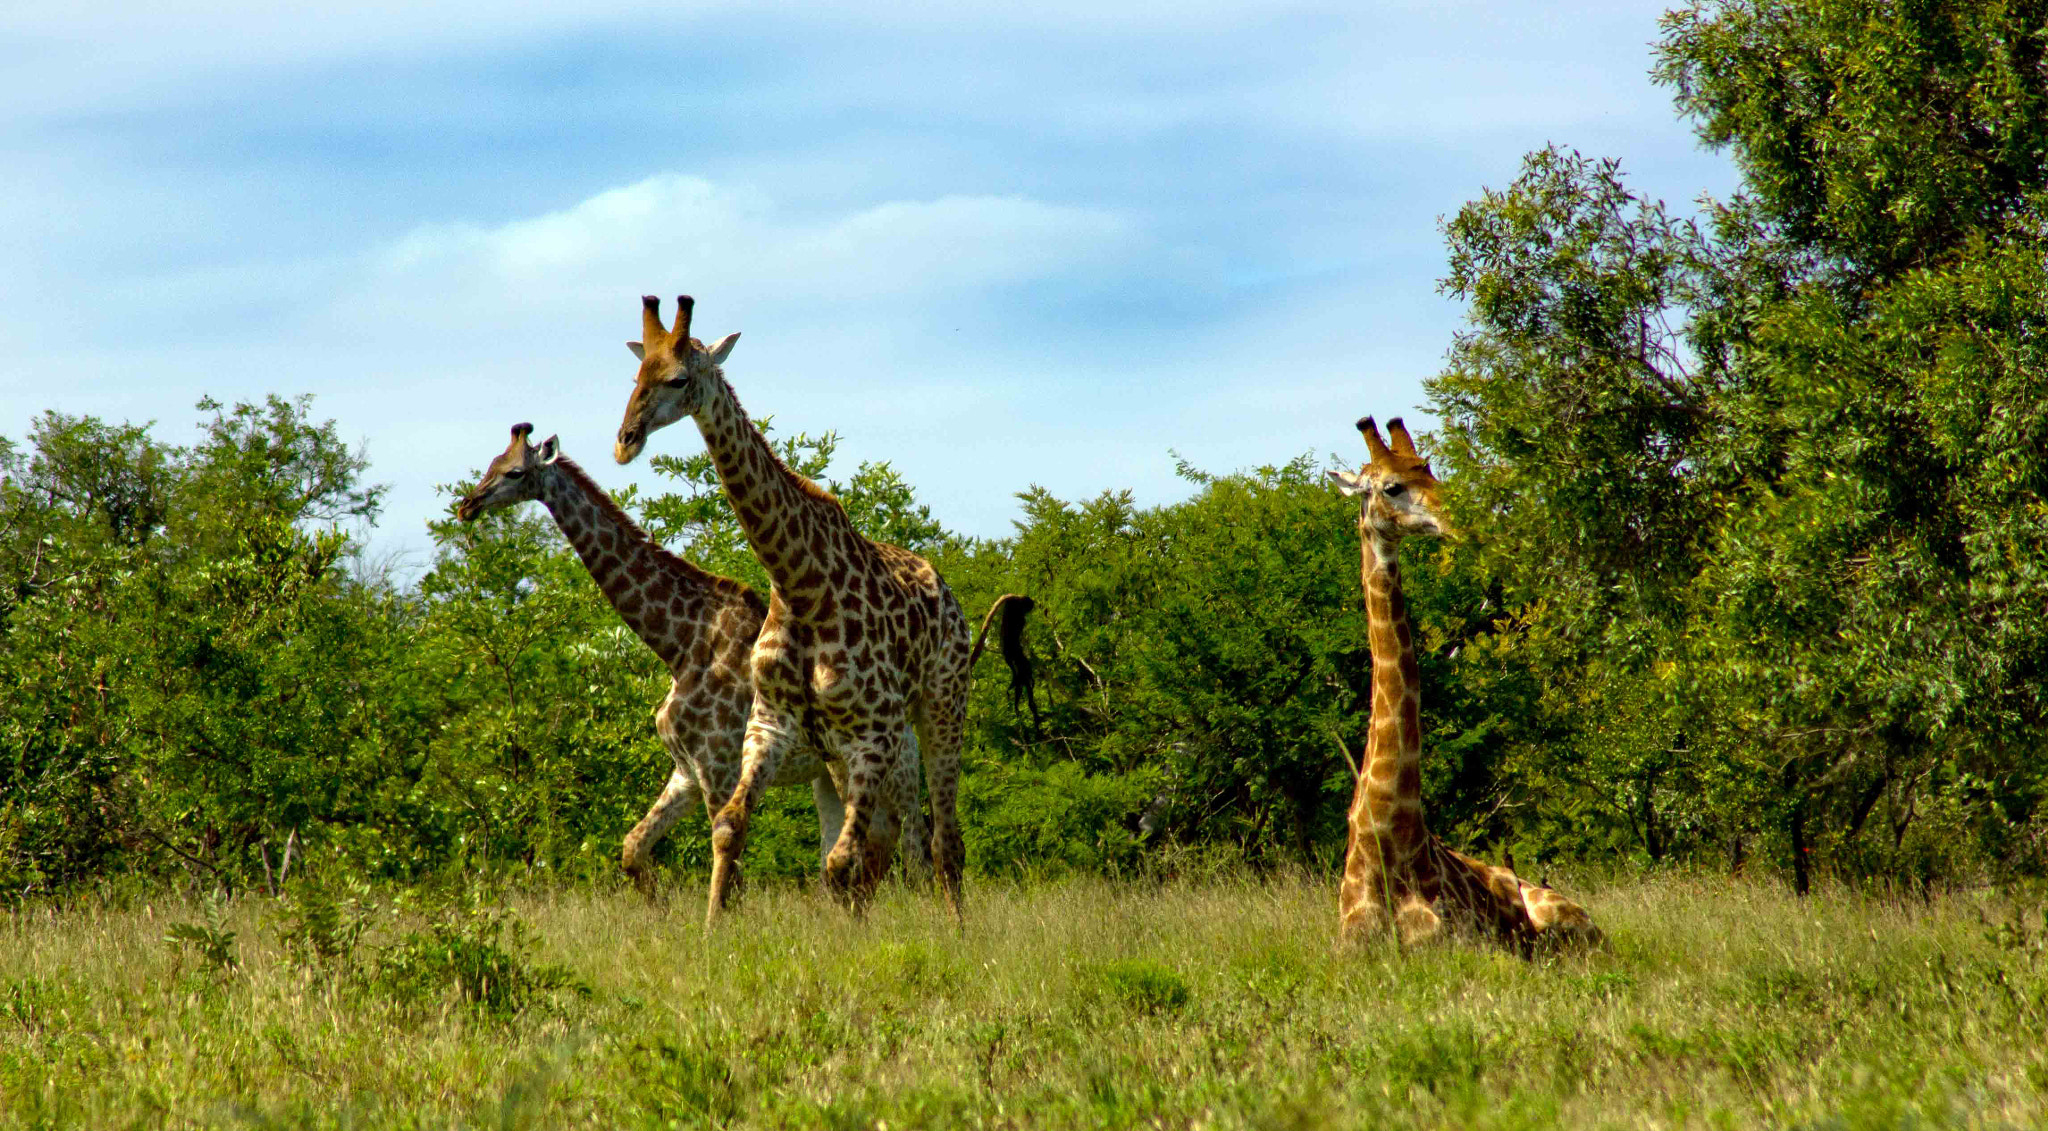 Photograph Giraffe by Nelis Nienaber on 500px